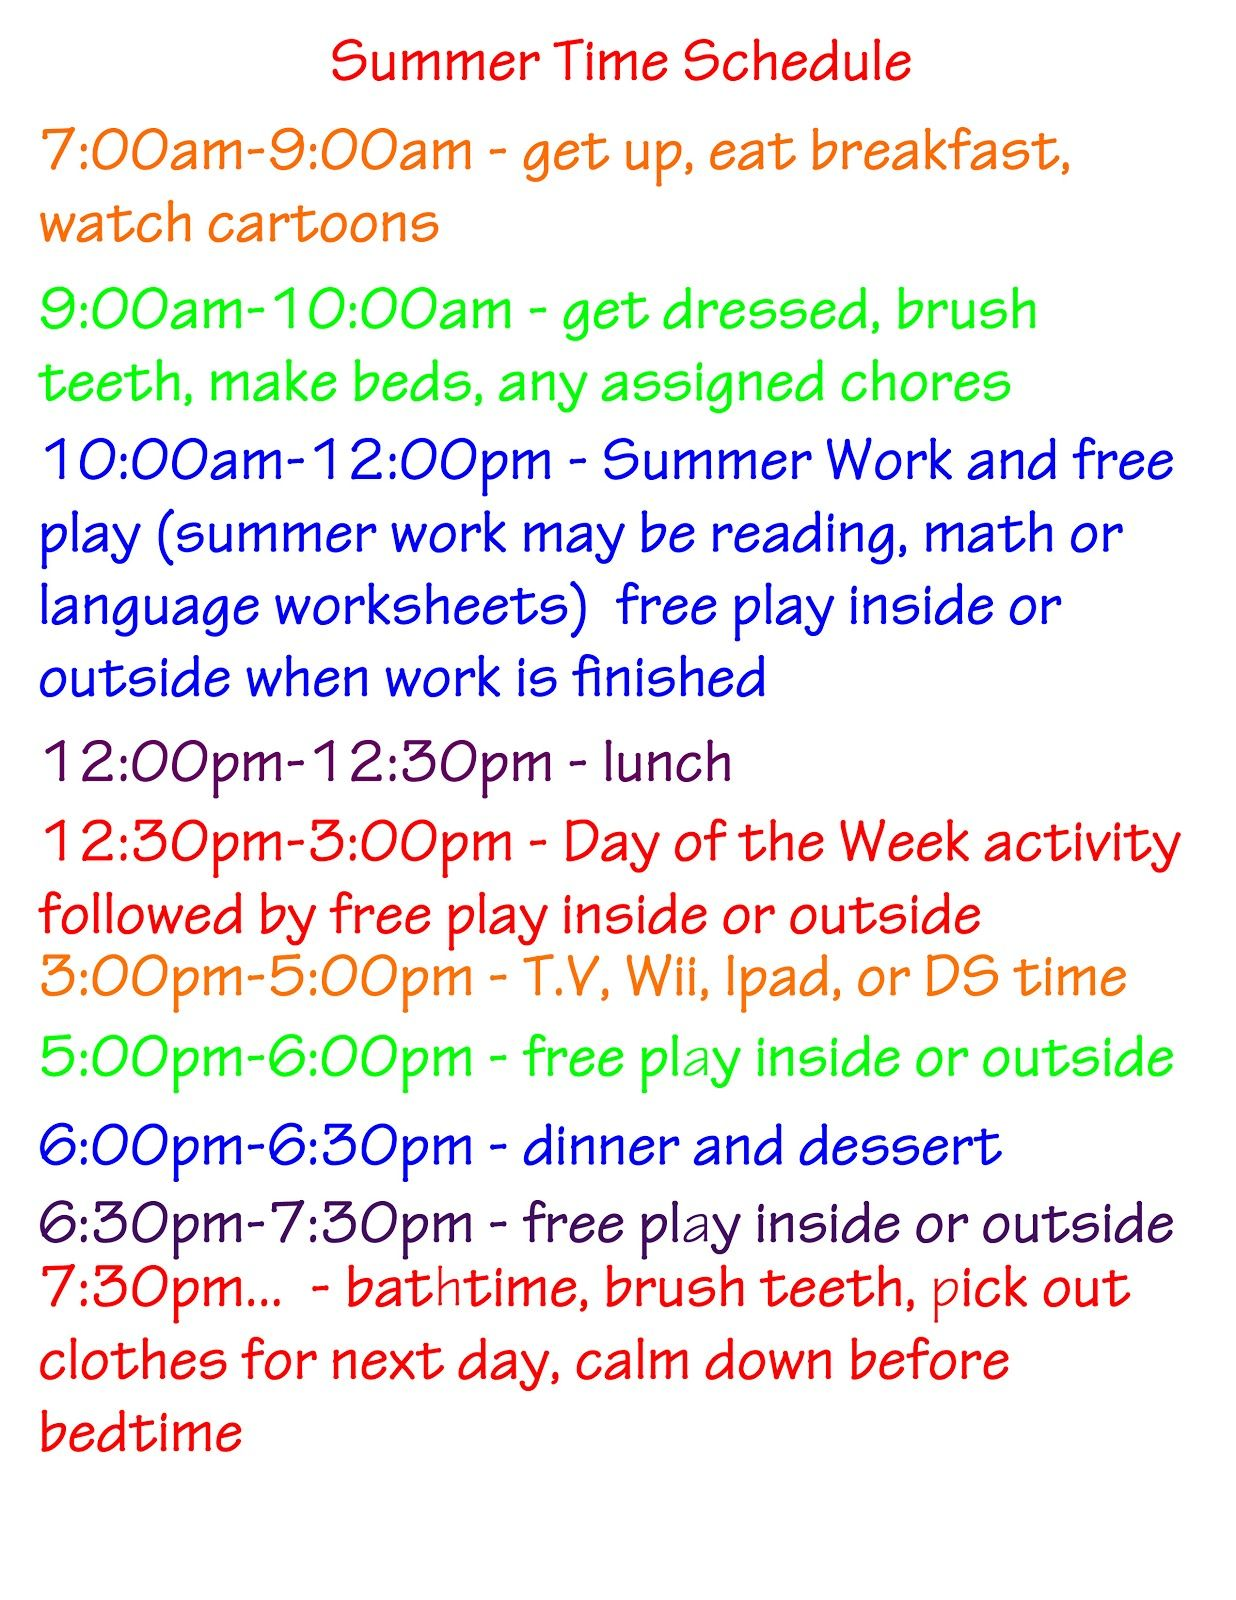 Summer Activities Schedule And Ideas